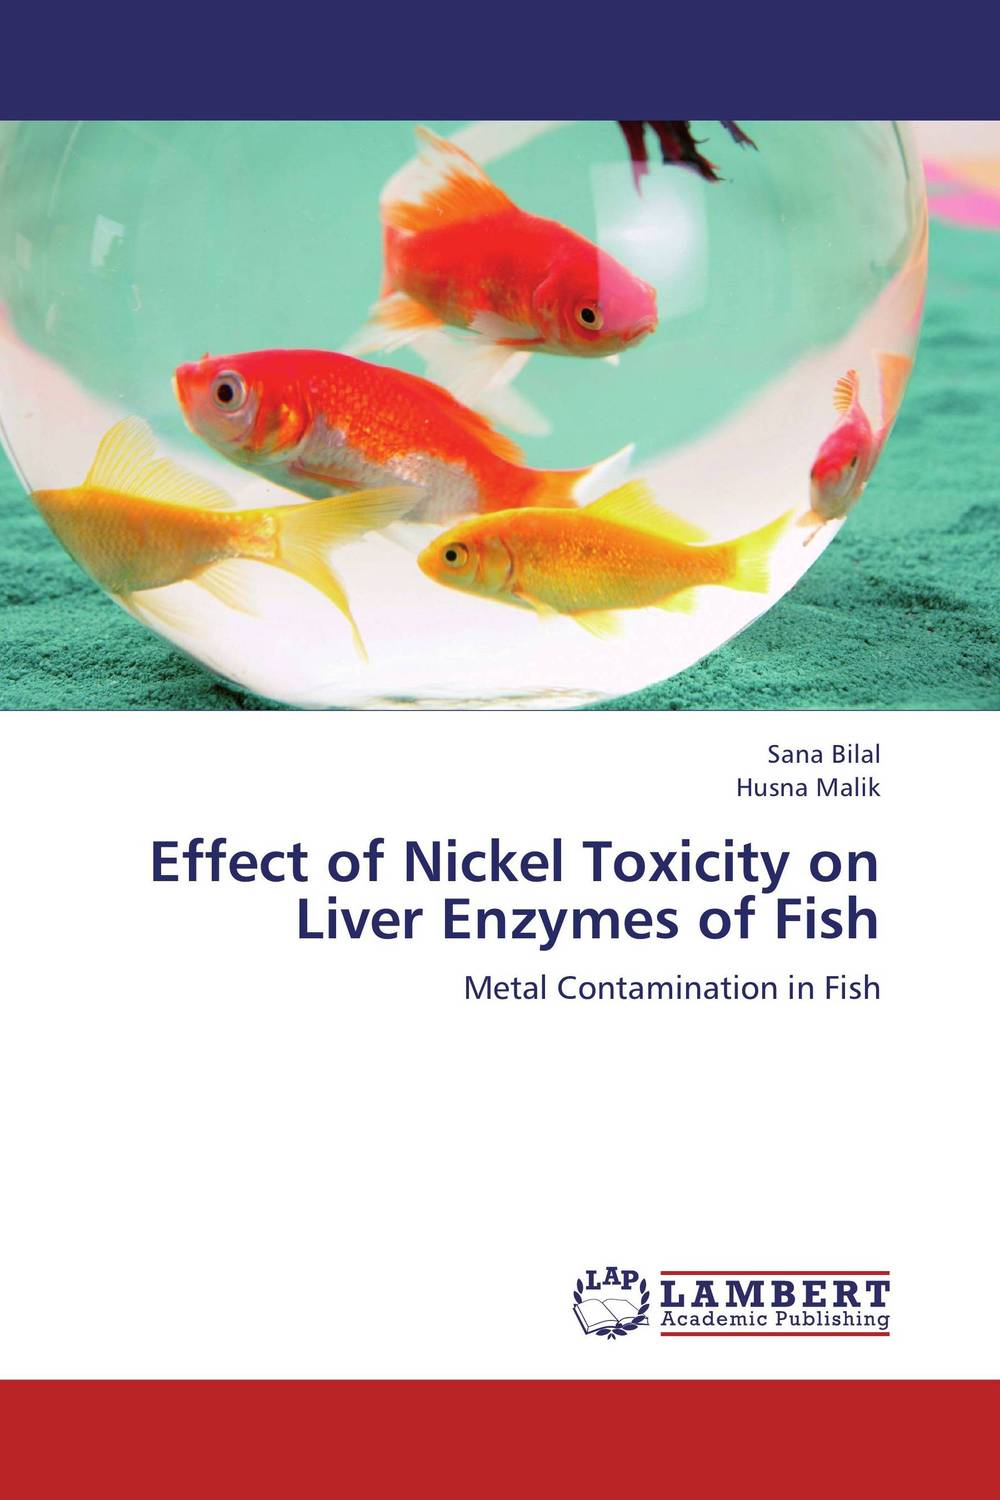 Effect of Nickel Toxicity on Liver Enzymes of Fish effect of nickel toxicity on liver enzymes of fish